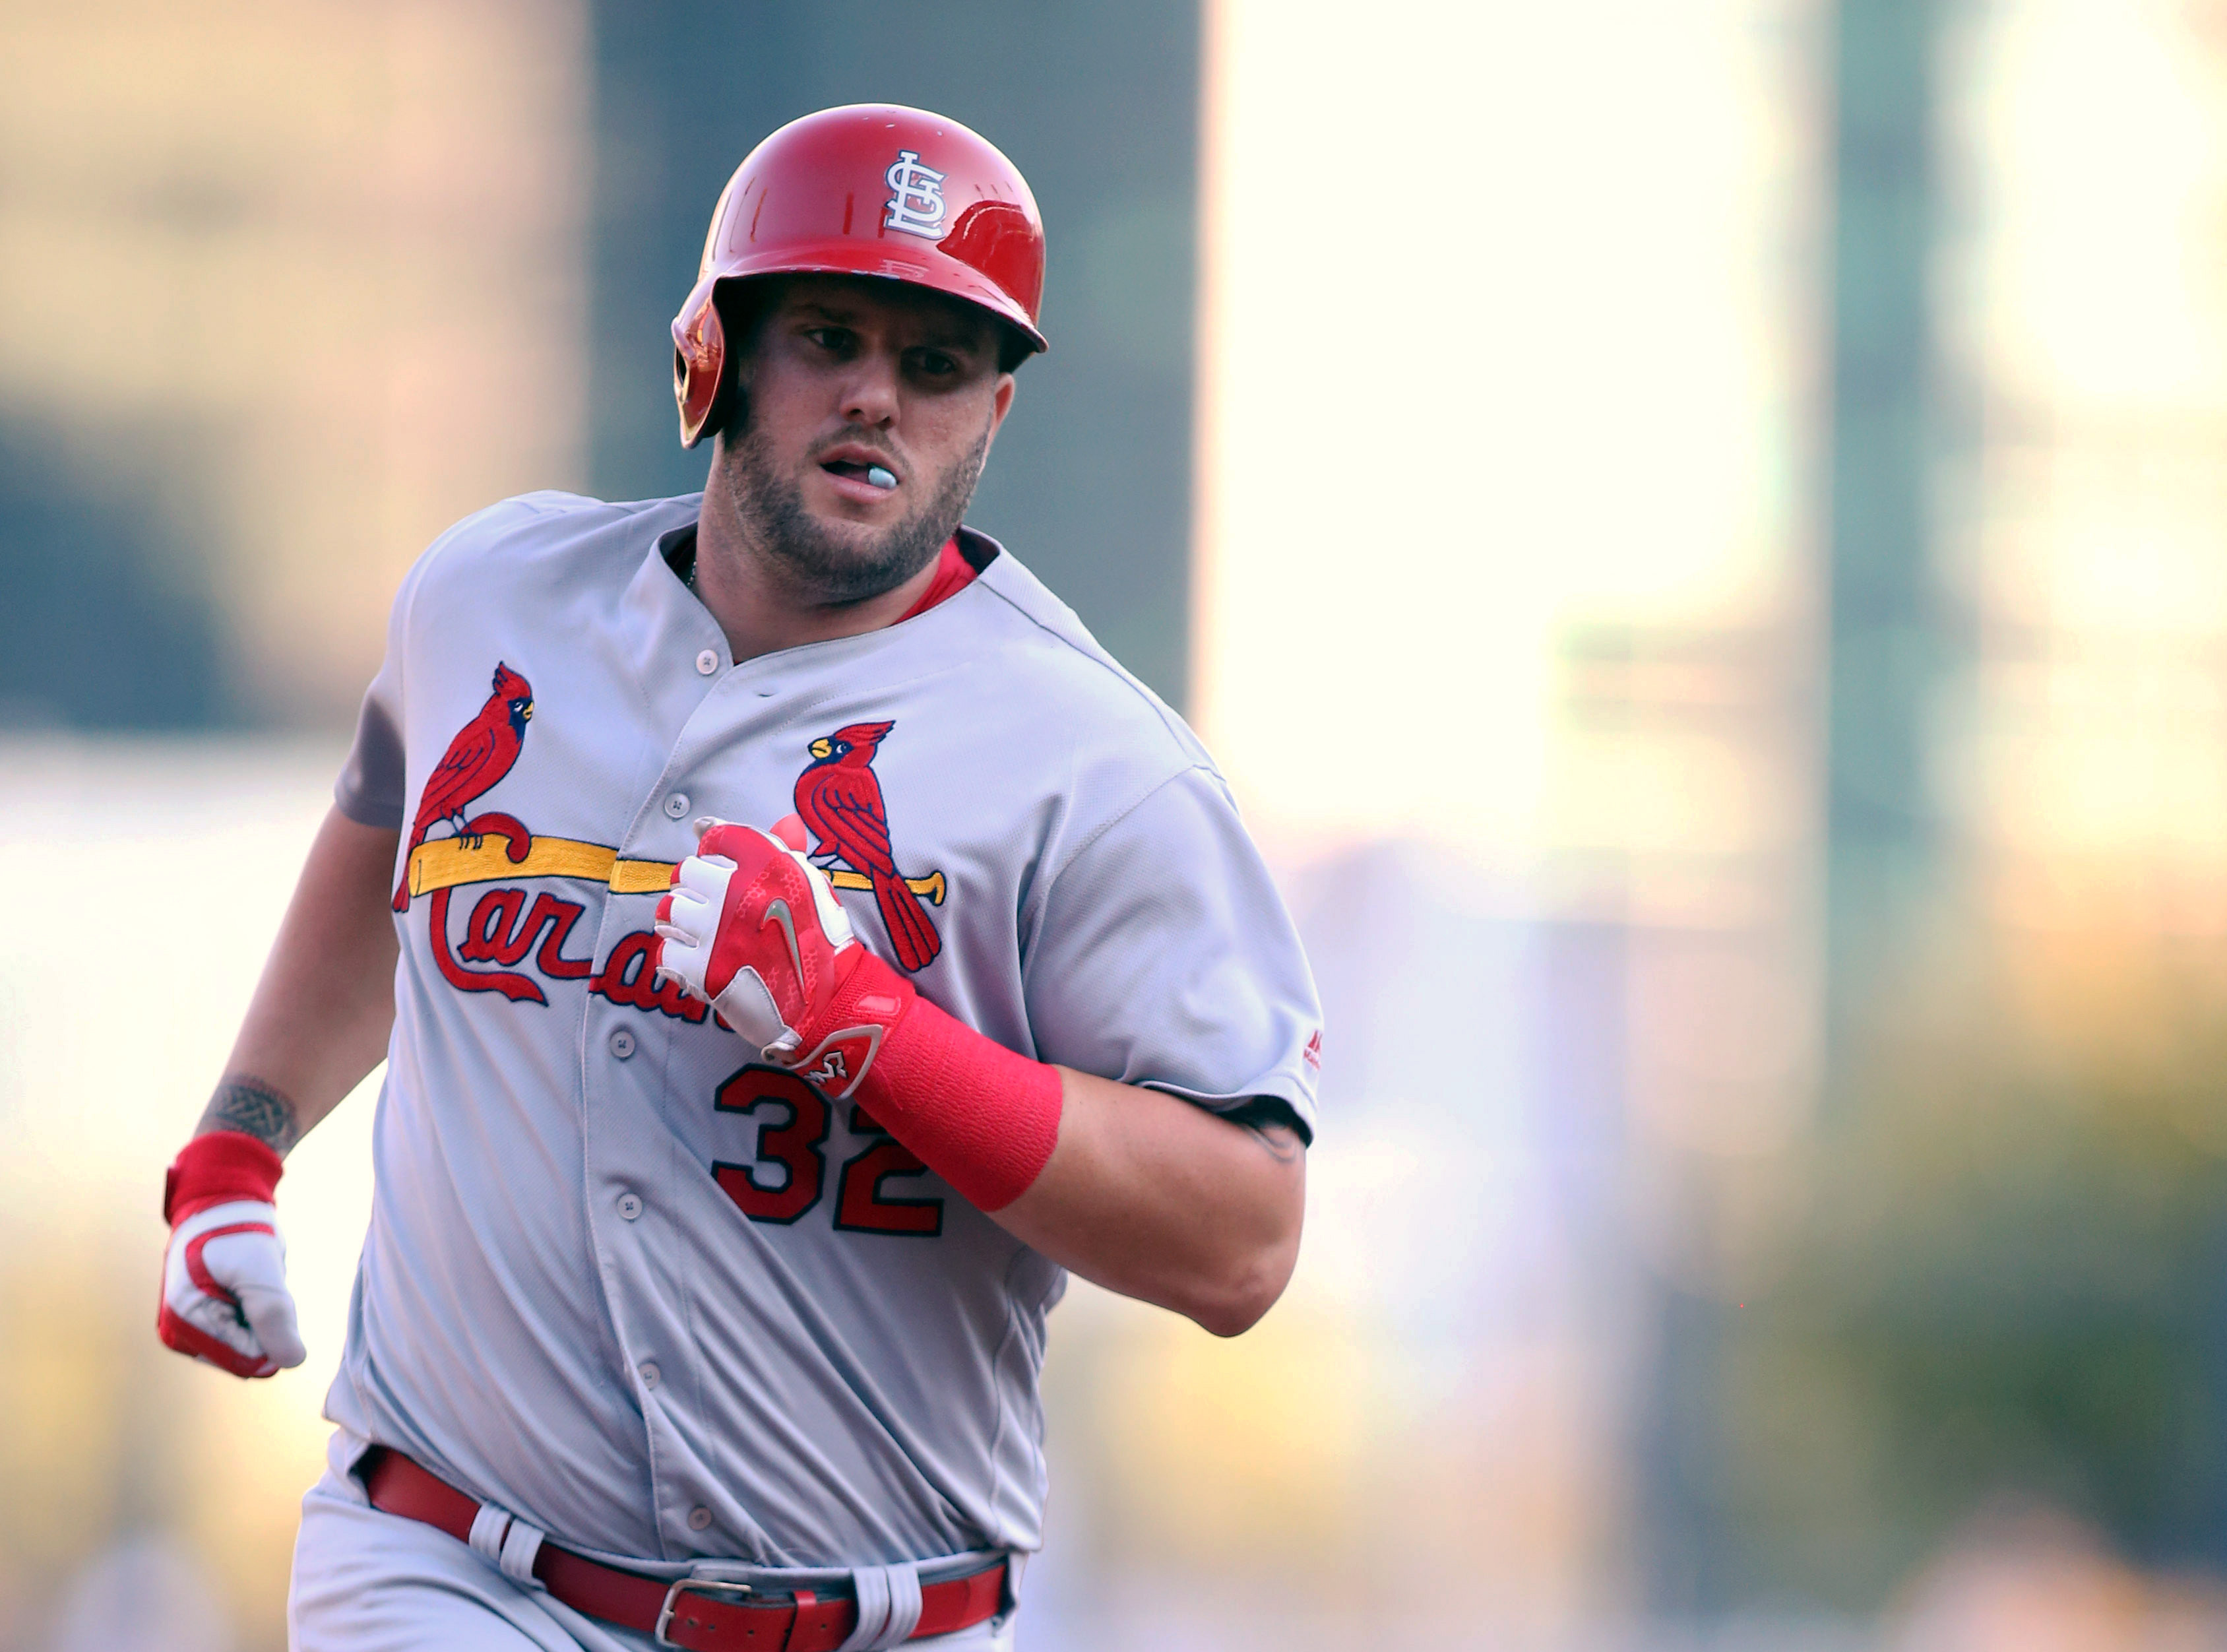 Noted lefty masher Matt Adams rounds the bases